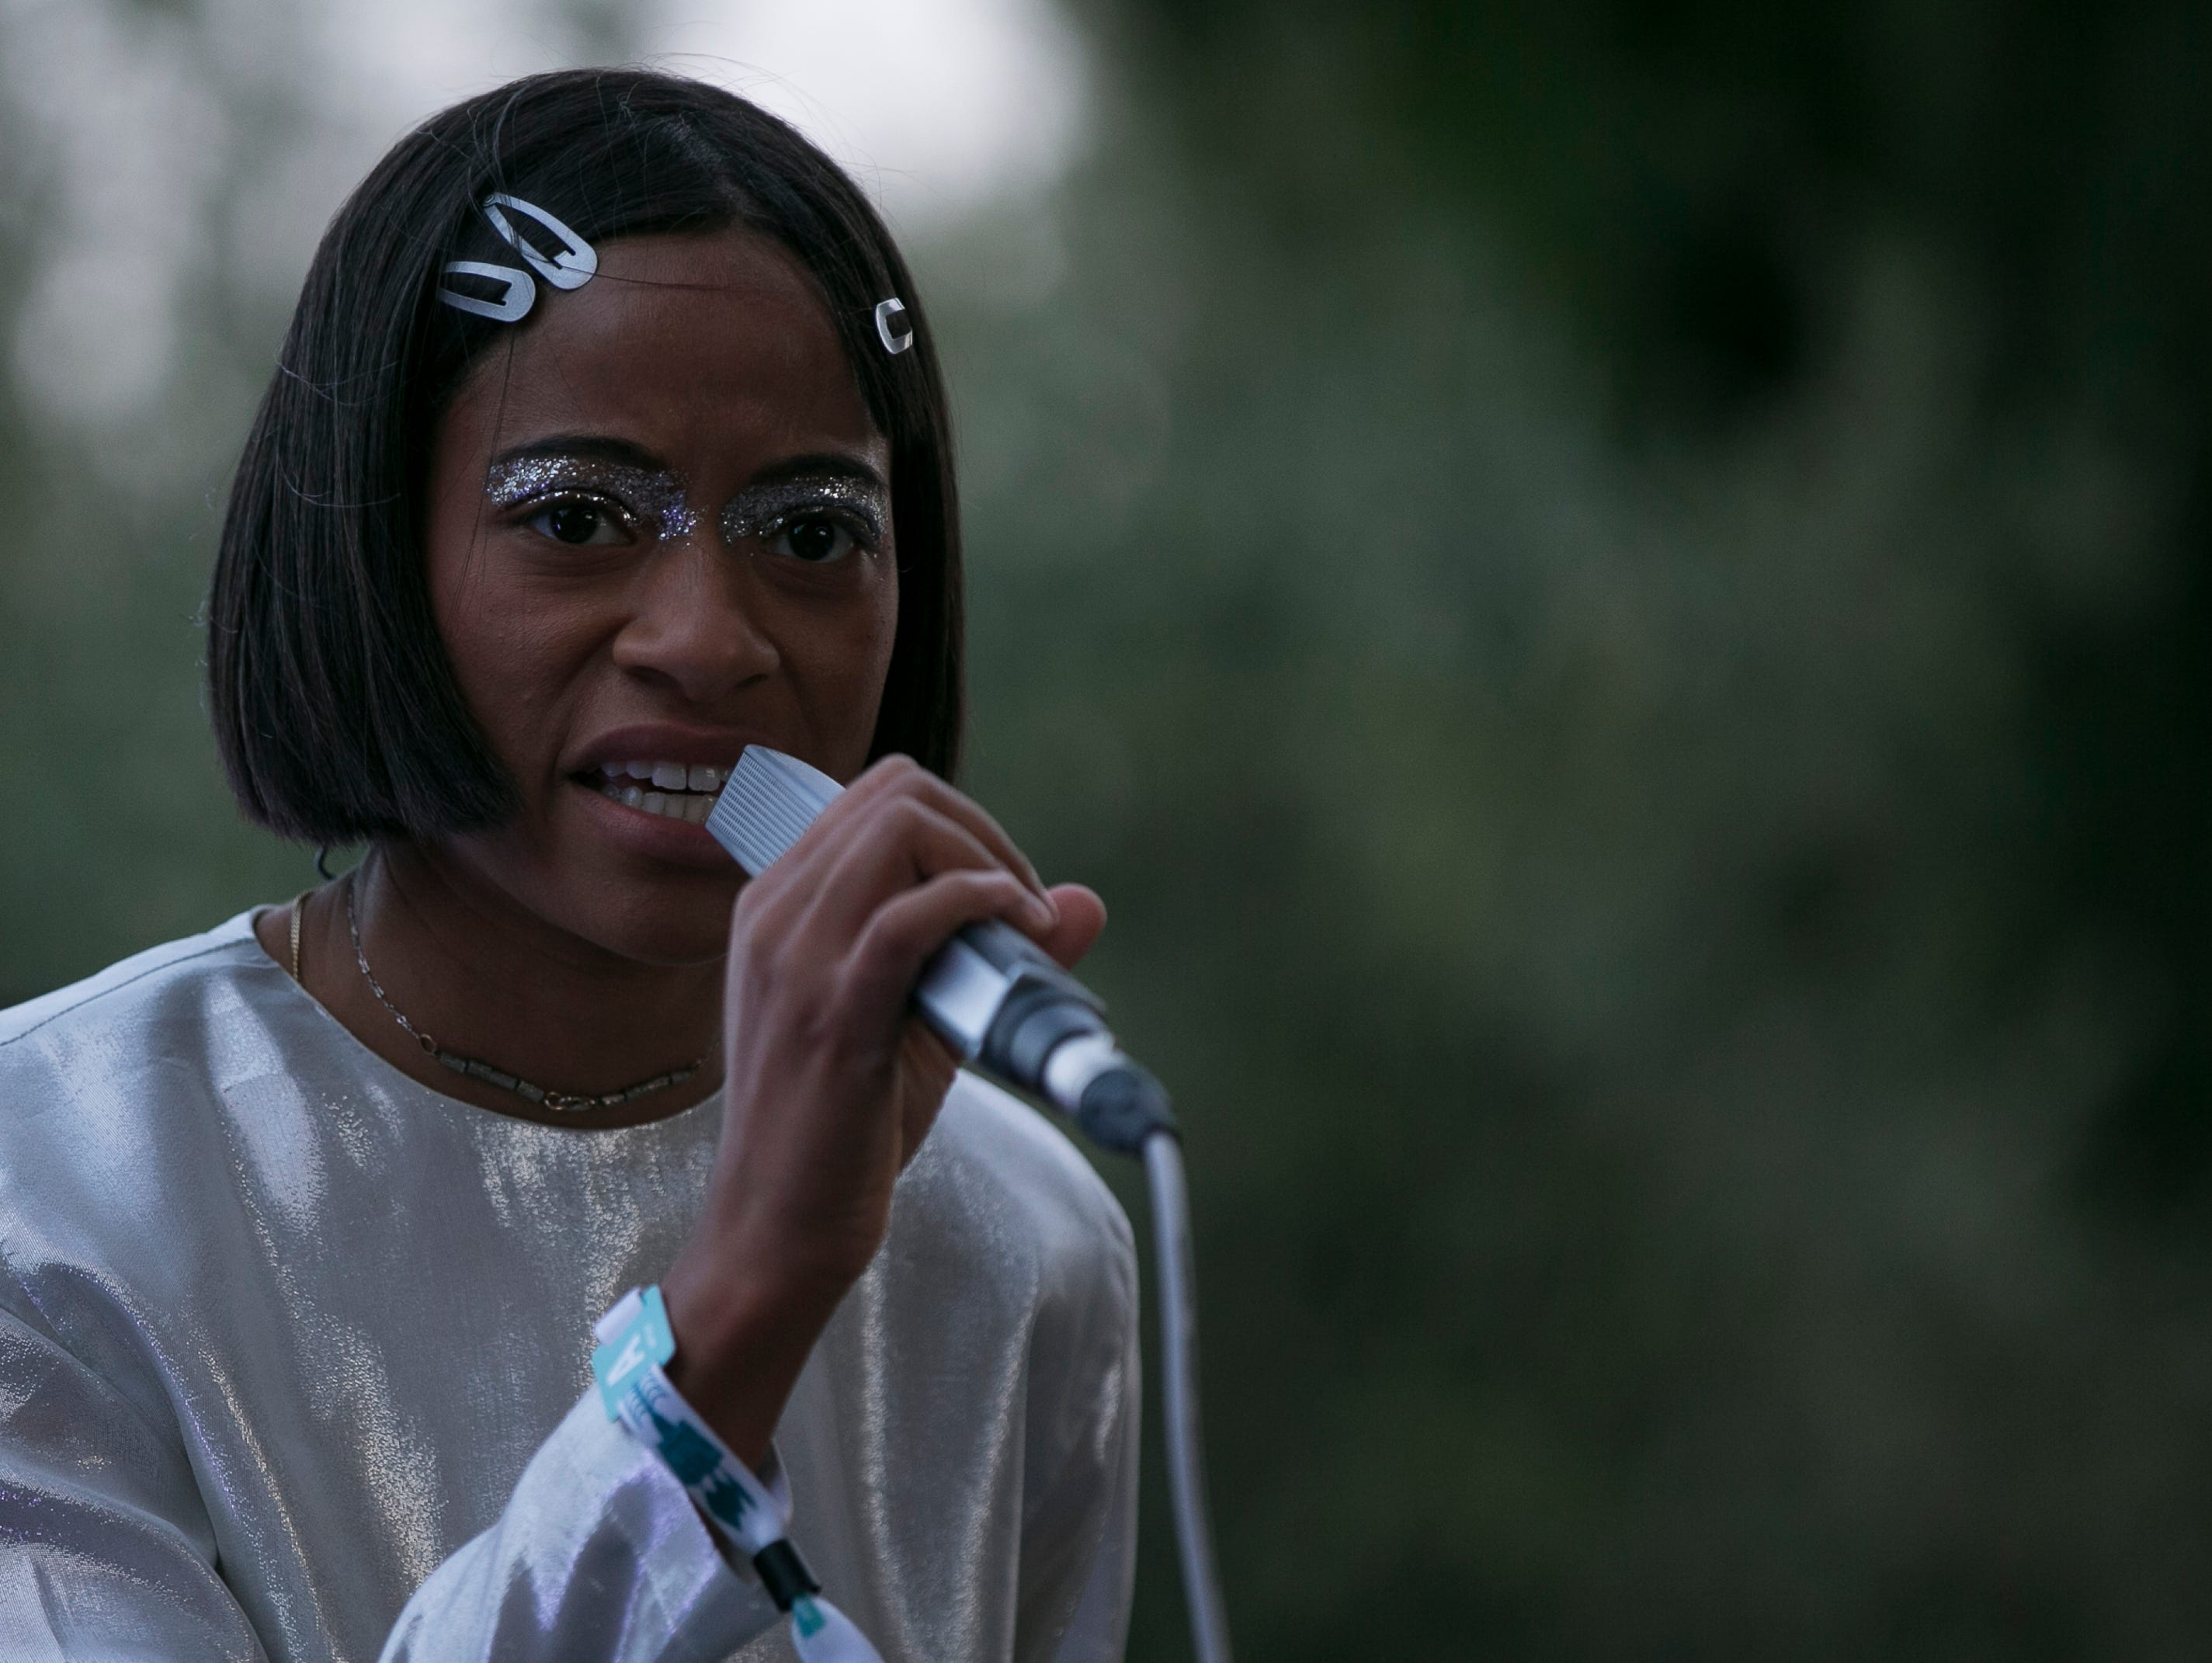 Kilo Kish performs at the 2019 FORM Arcosanti music festival near Camp Verde, Arizona, on May 10, 2019.